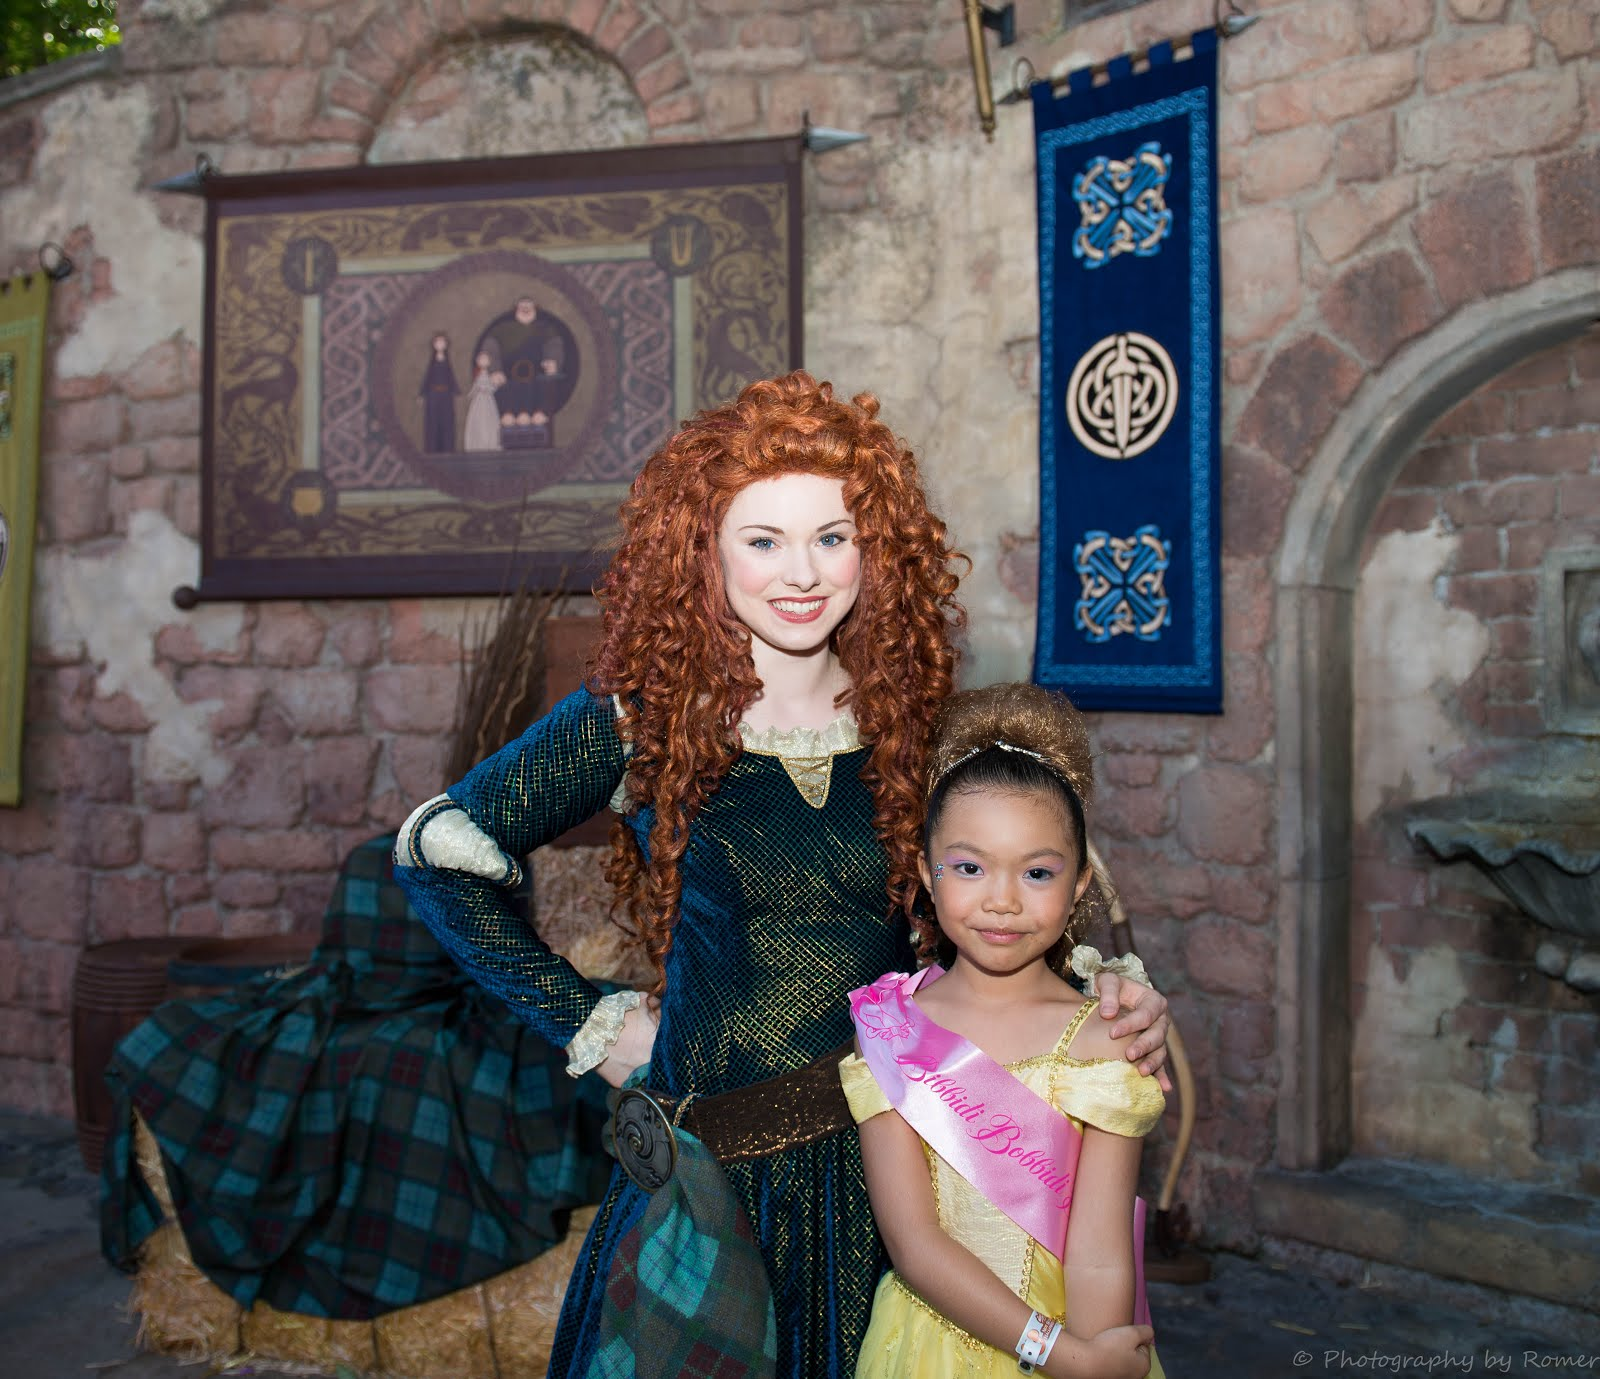 Brave Meridas Meet And Greet At Walt Disney World Tips From The